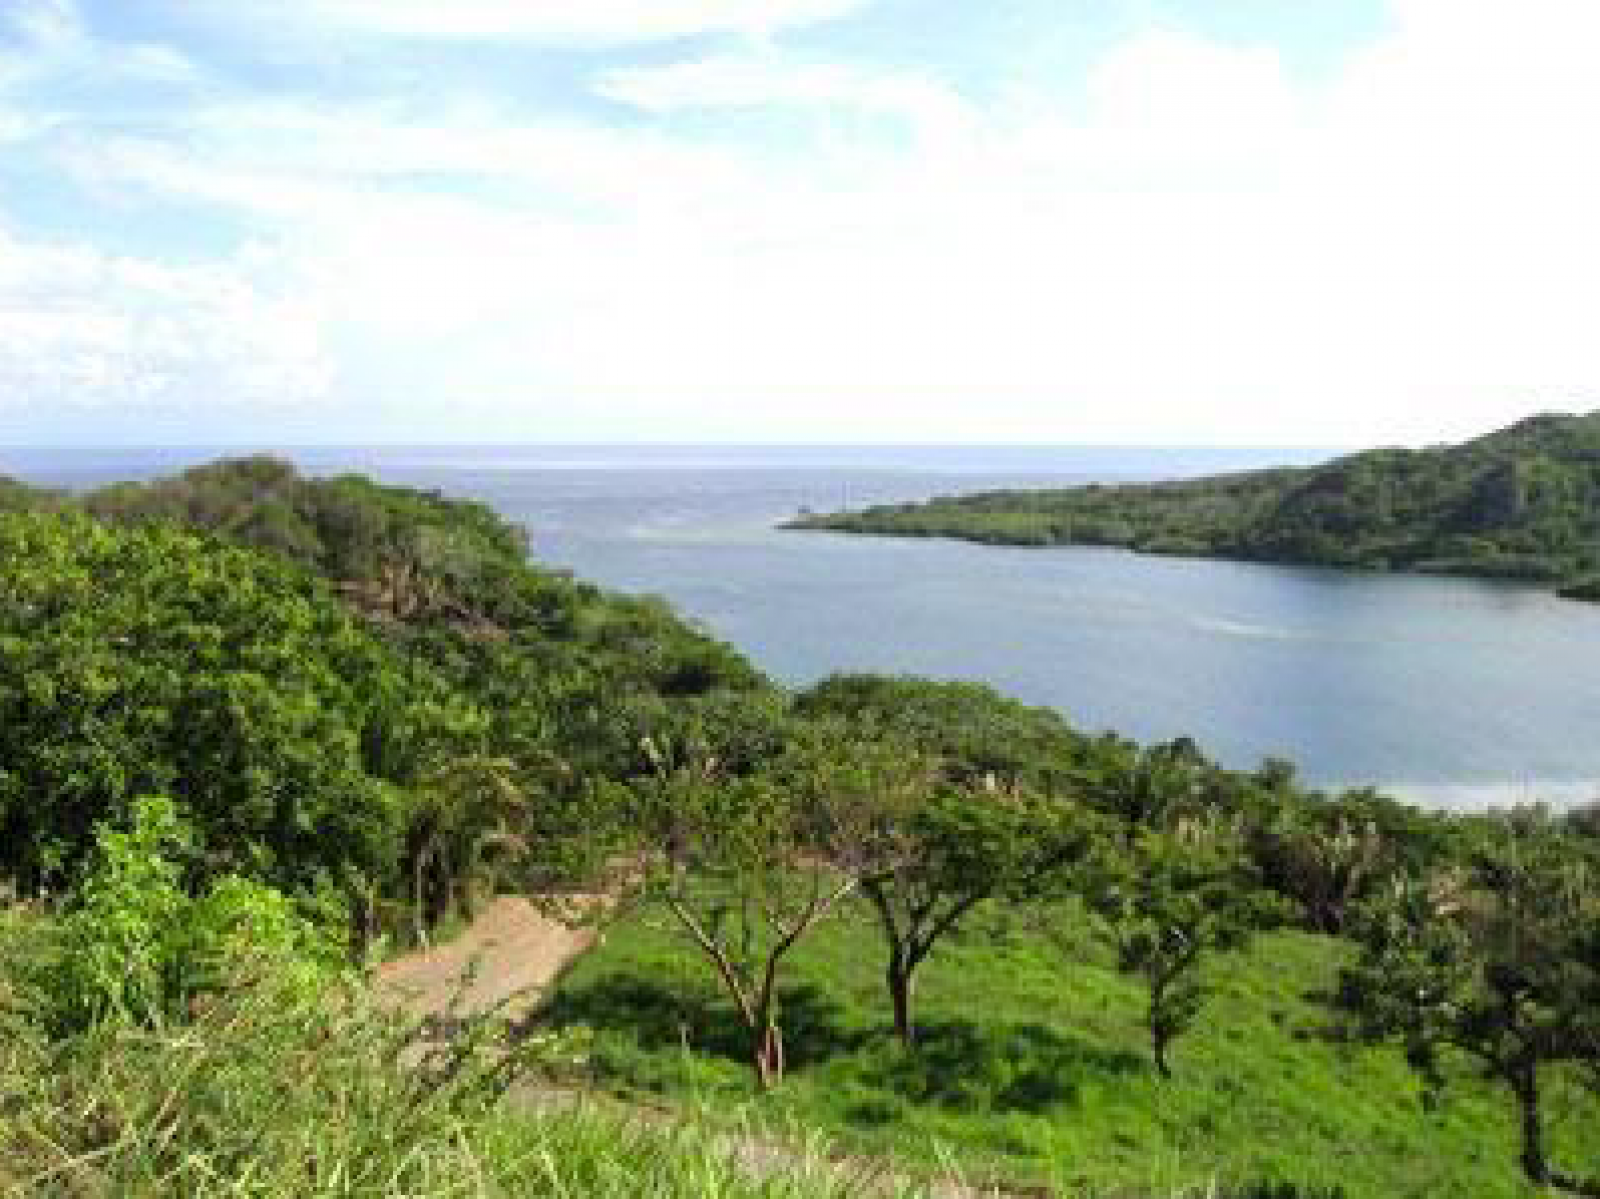 Each homesite with spectacular views over Caribe Bight out to the Caribbean Sea